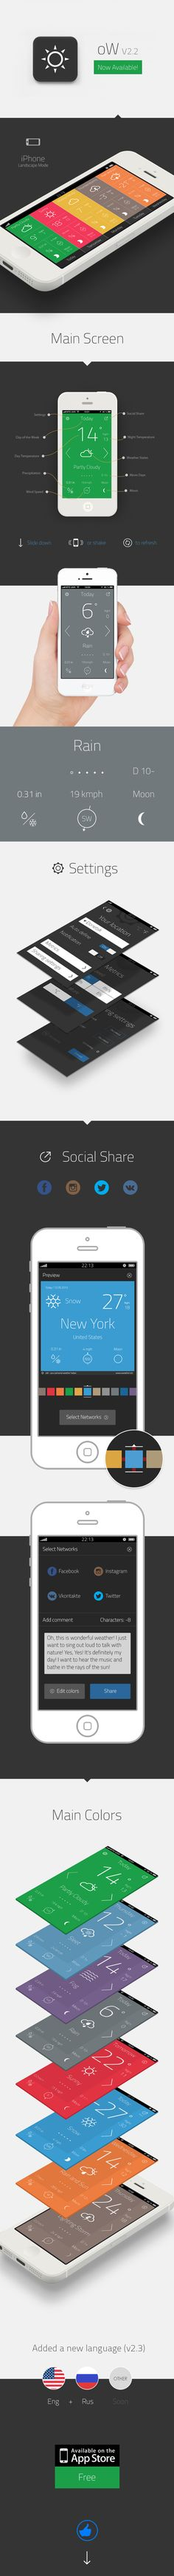 "Weather App ""Outside the window"" v 2.2 by Artem Svitelskyi, via Behance"